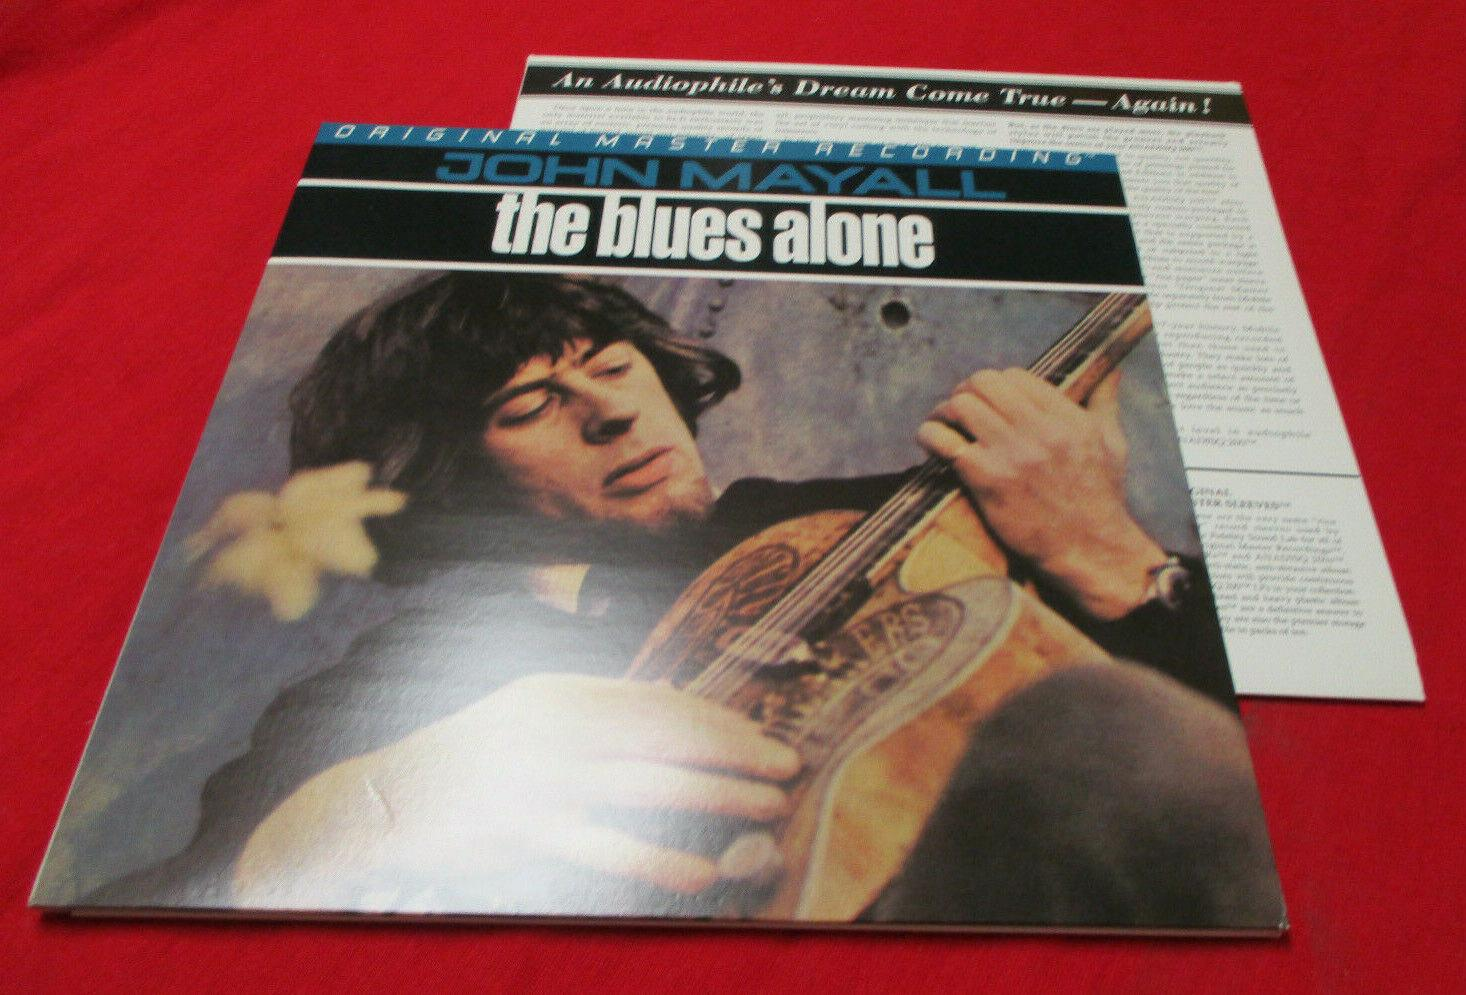 JOHN MAYALL Blues Alone LP (1995) MOBILE FIDELITY MFSL Blues Rock